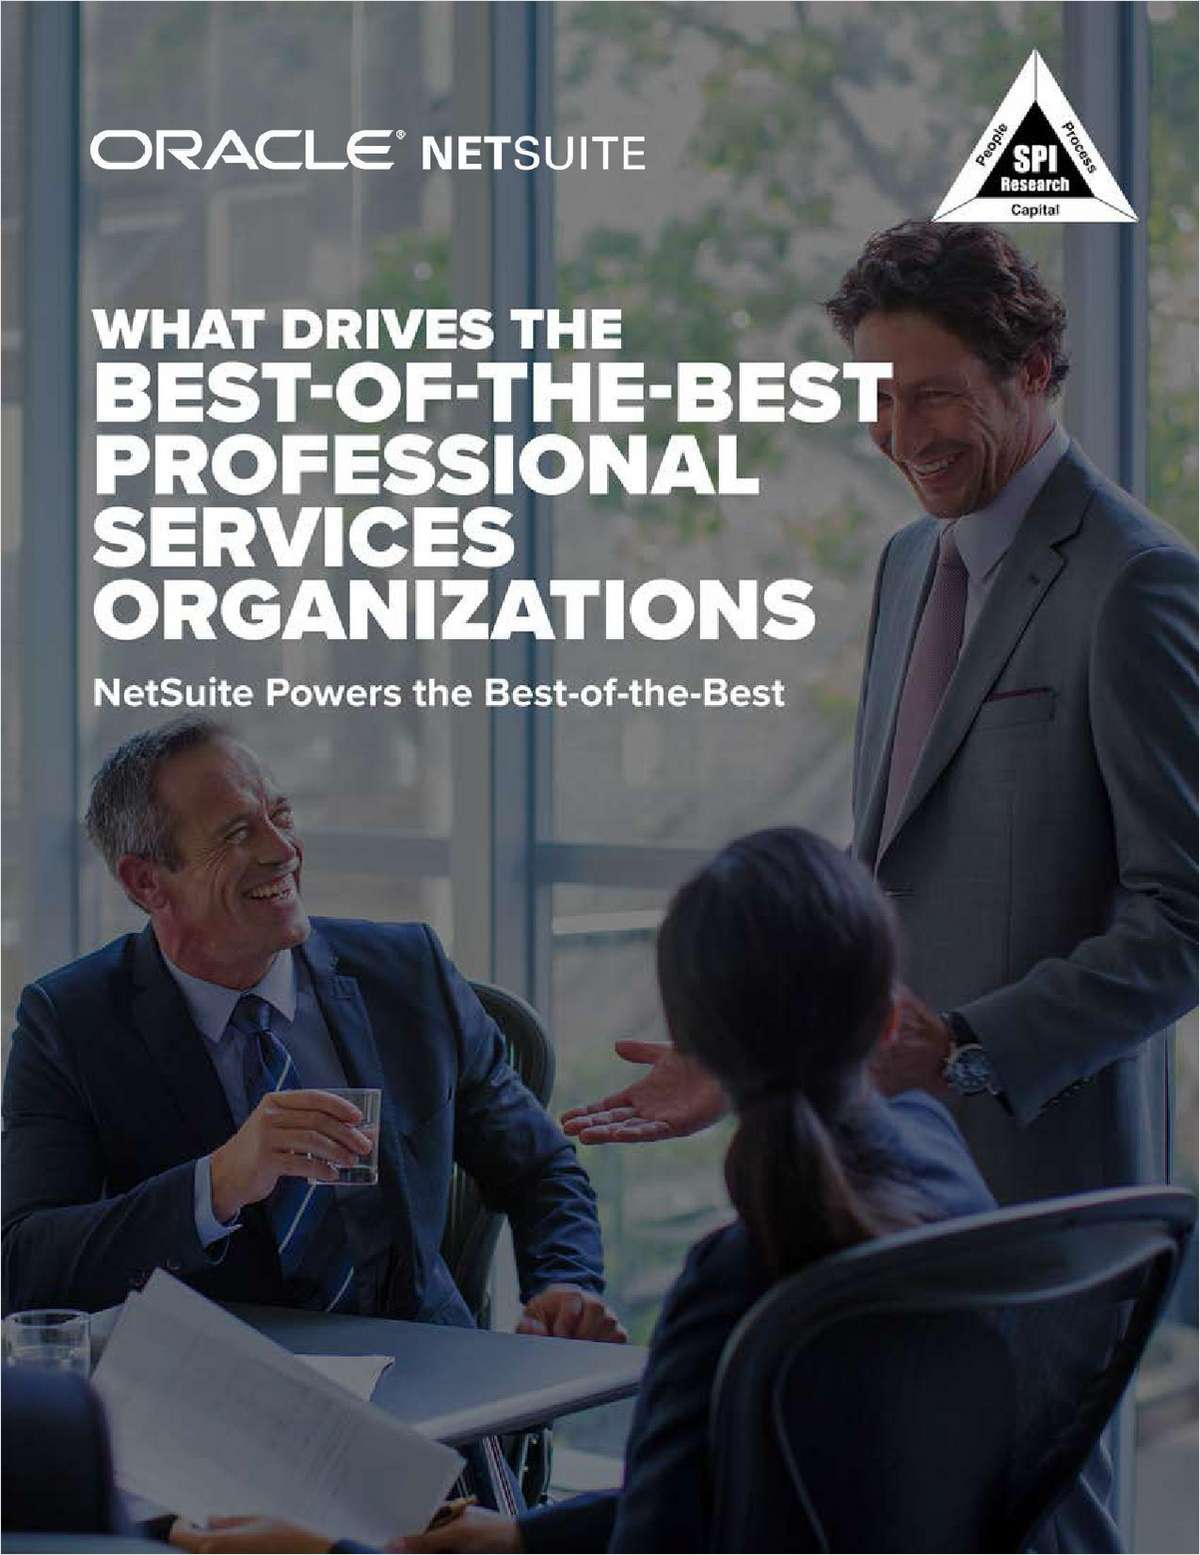 What Drives the Best-of-the-Best Professional Services Organizations